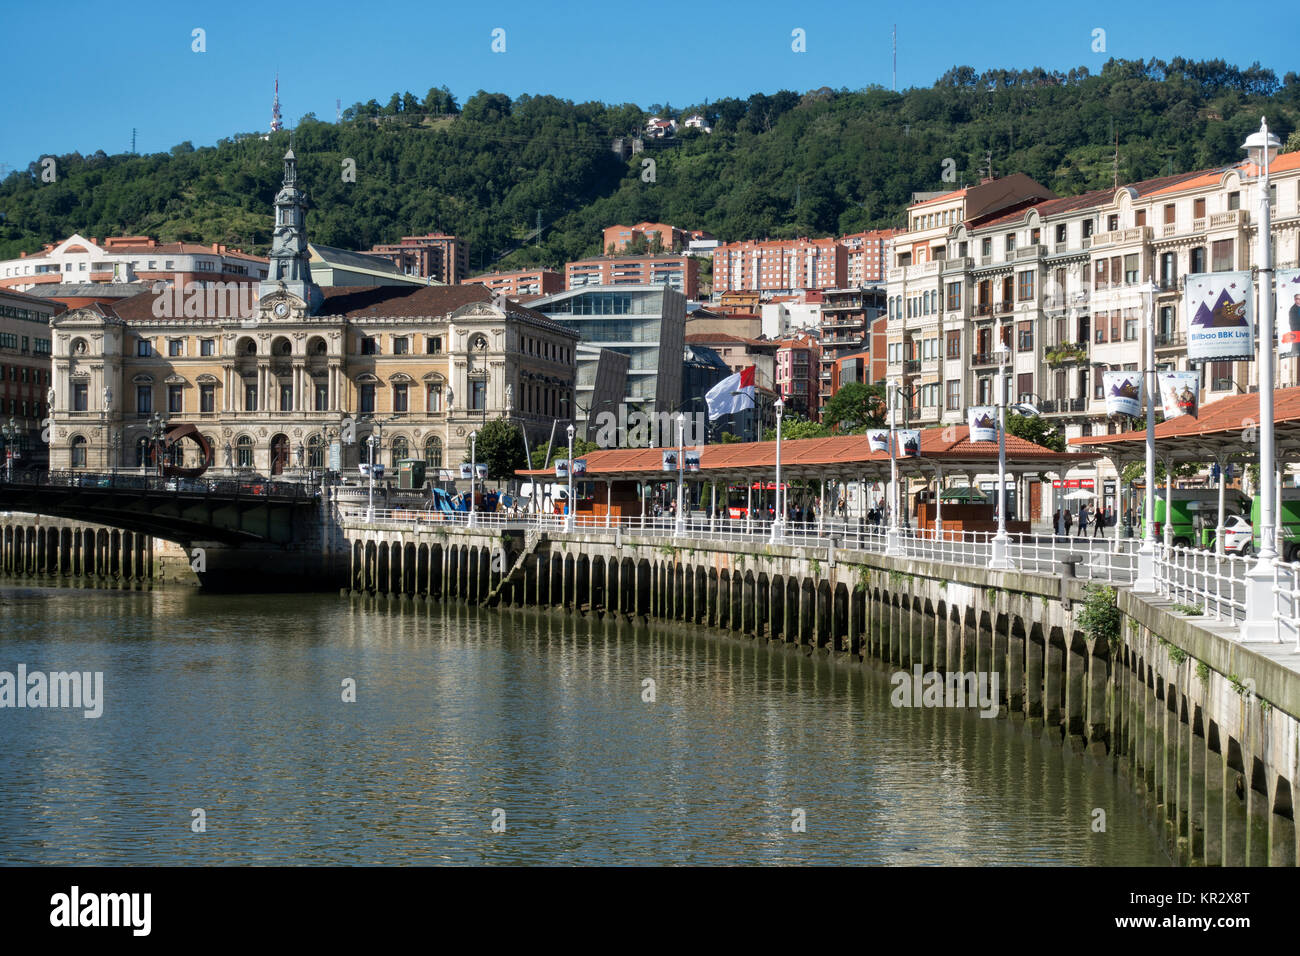 Bilbao ria. (Ria del Nervión).On the left side the Town Hall.Bilbao.Spain - Stock Image